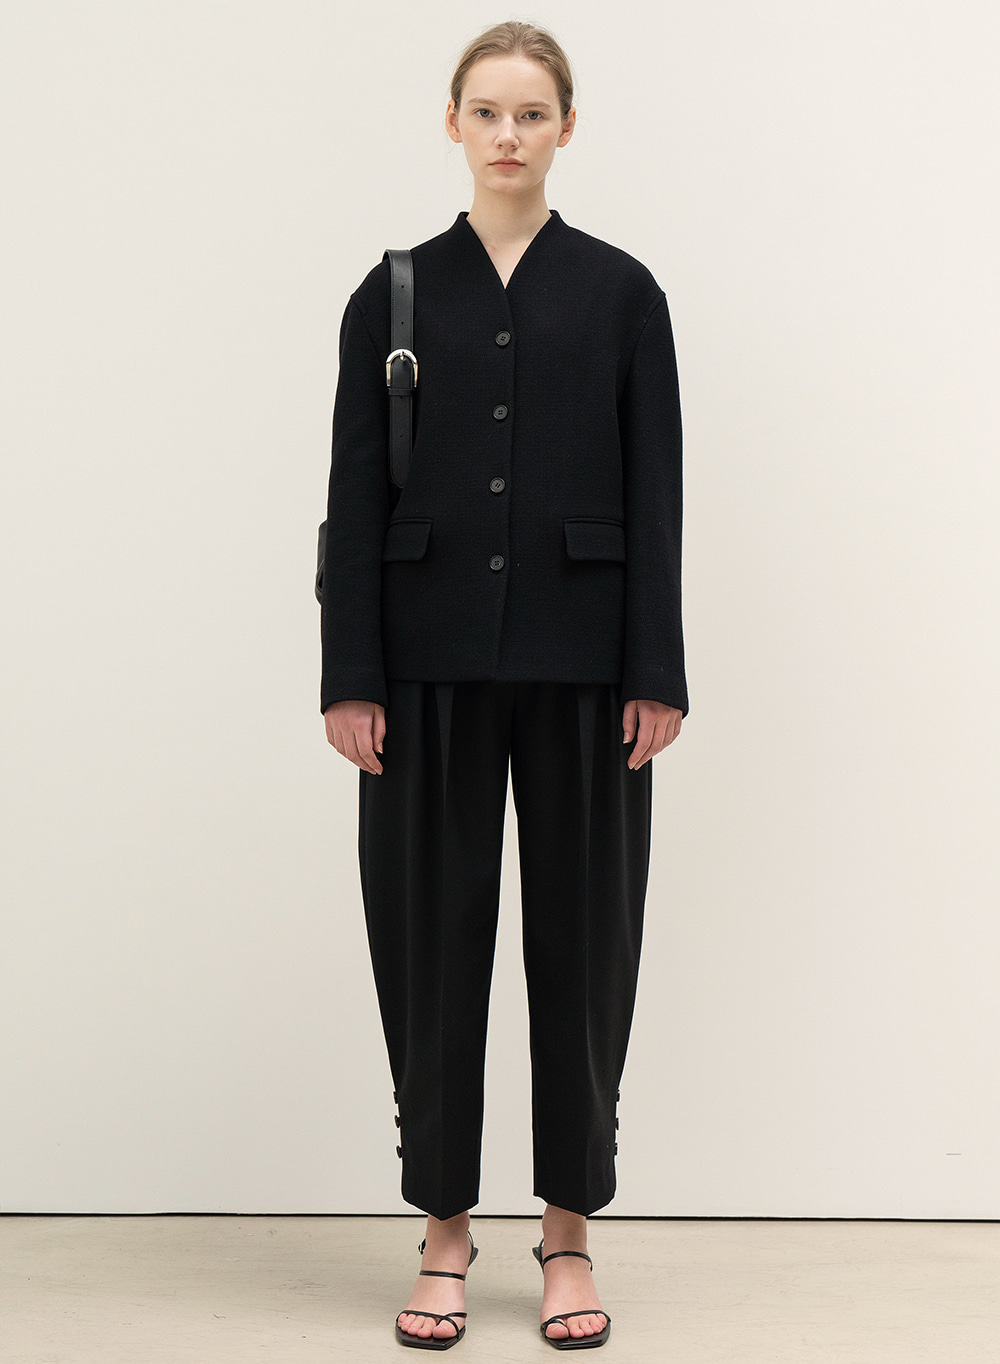 [9월22일 순차배송]FW20 Rounded Pleats Pants Black